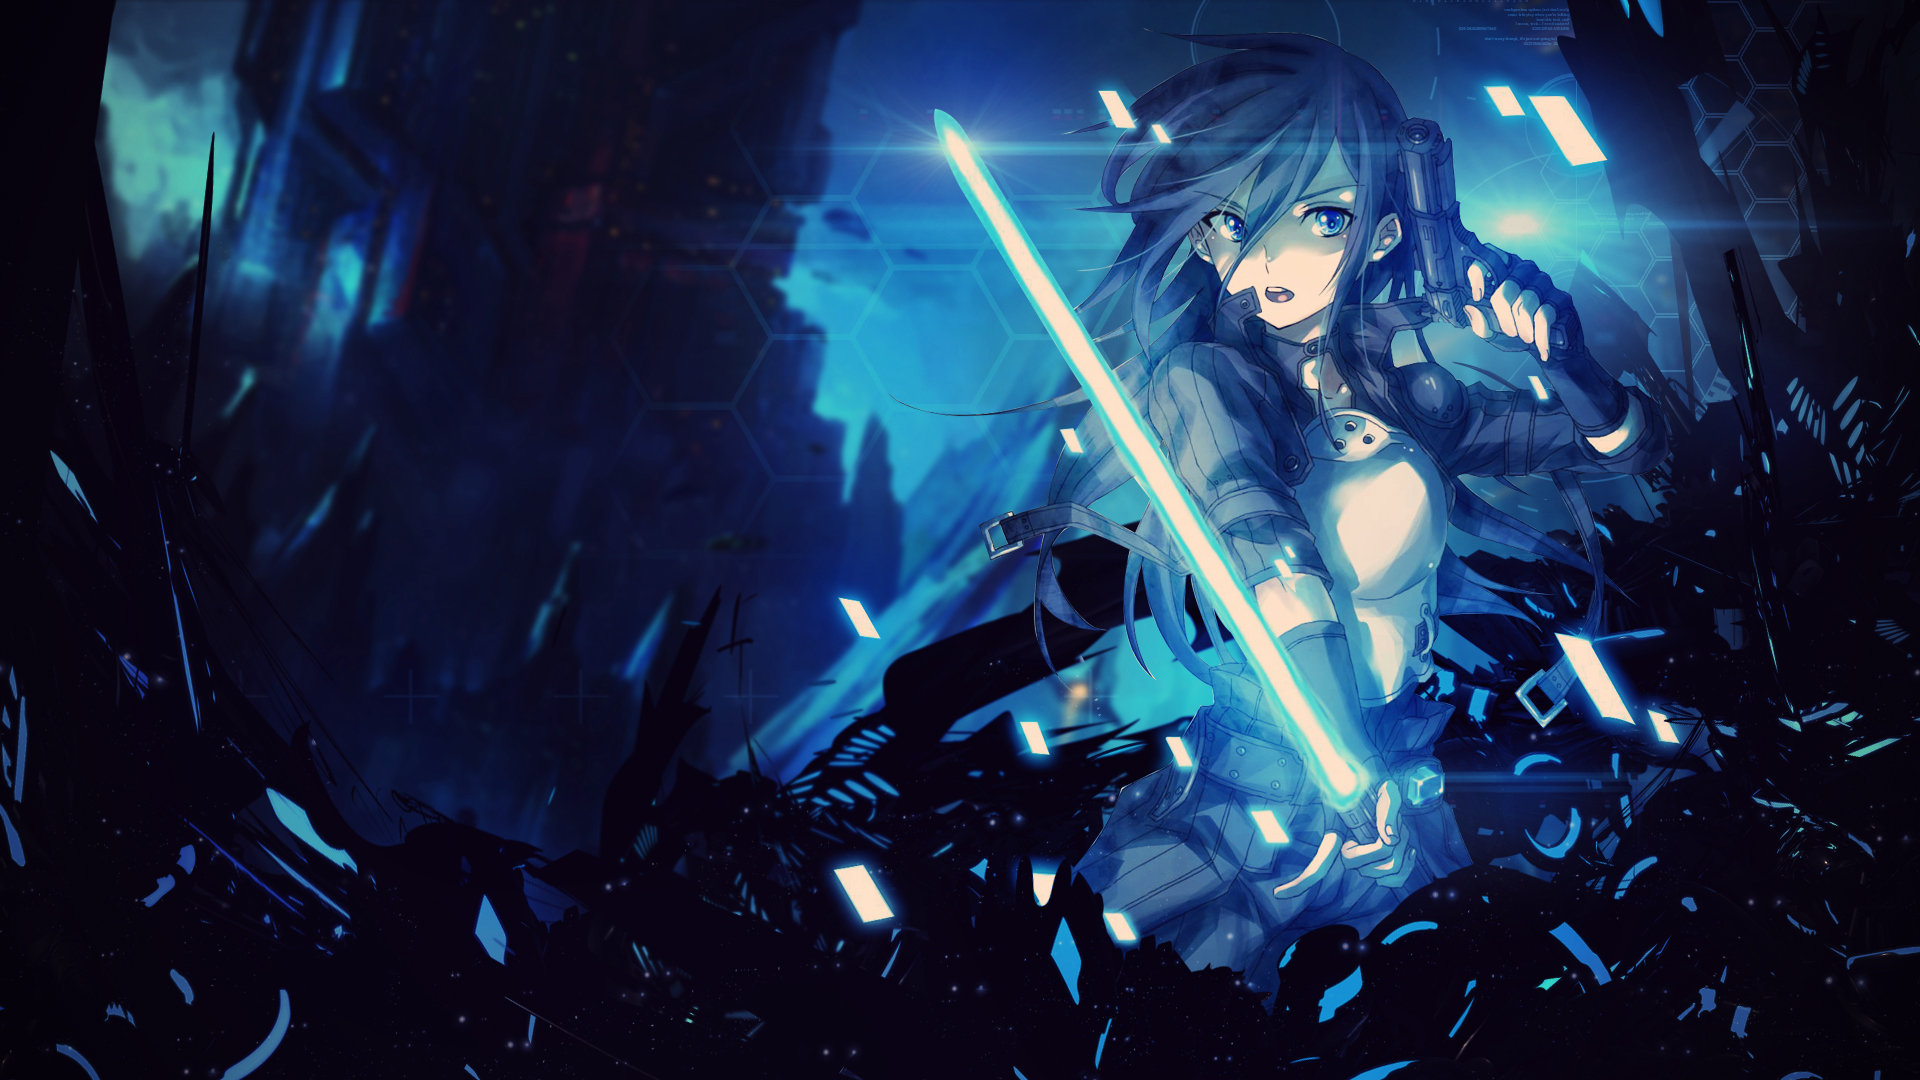 Sword Art Online - GGO Kirito Wallpaper by Trinexz on ...